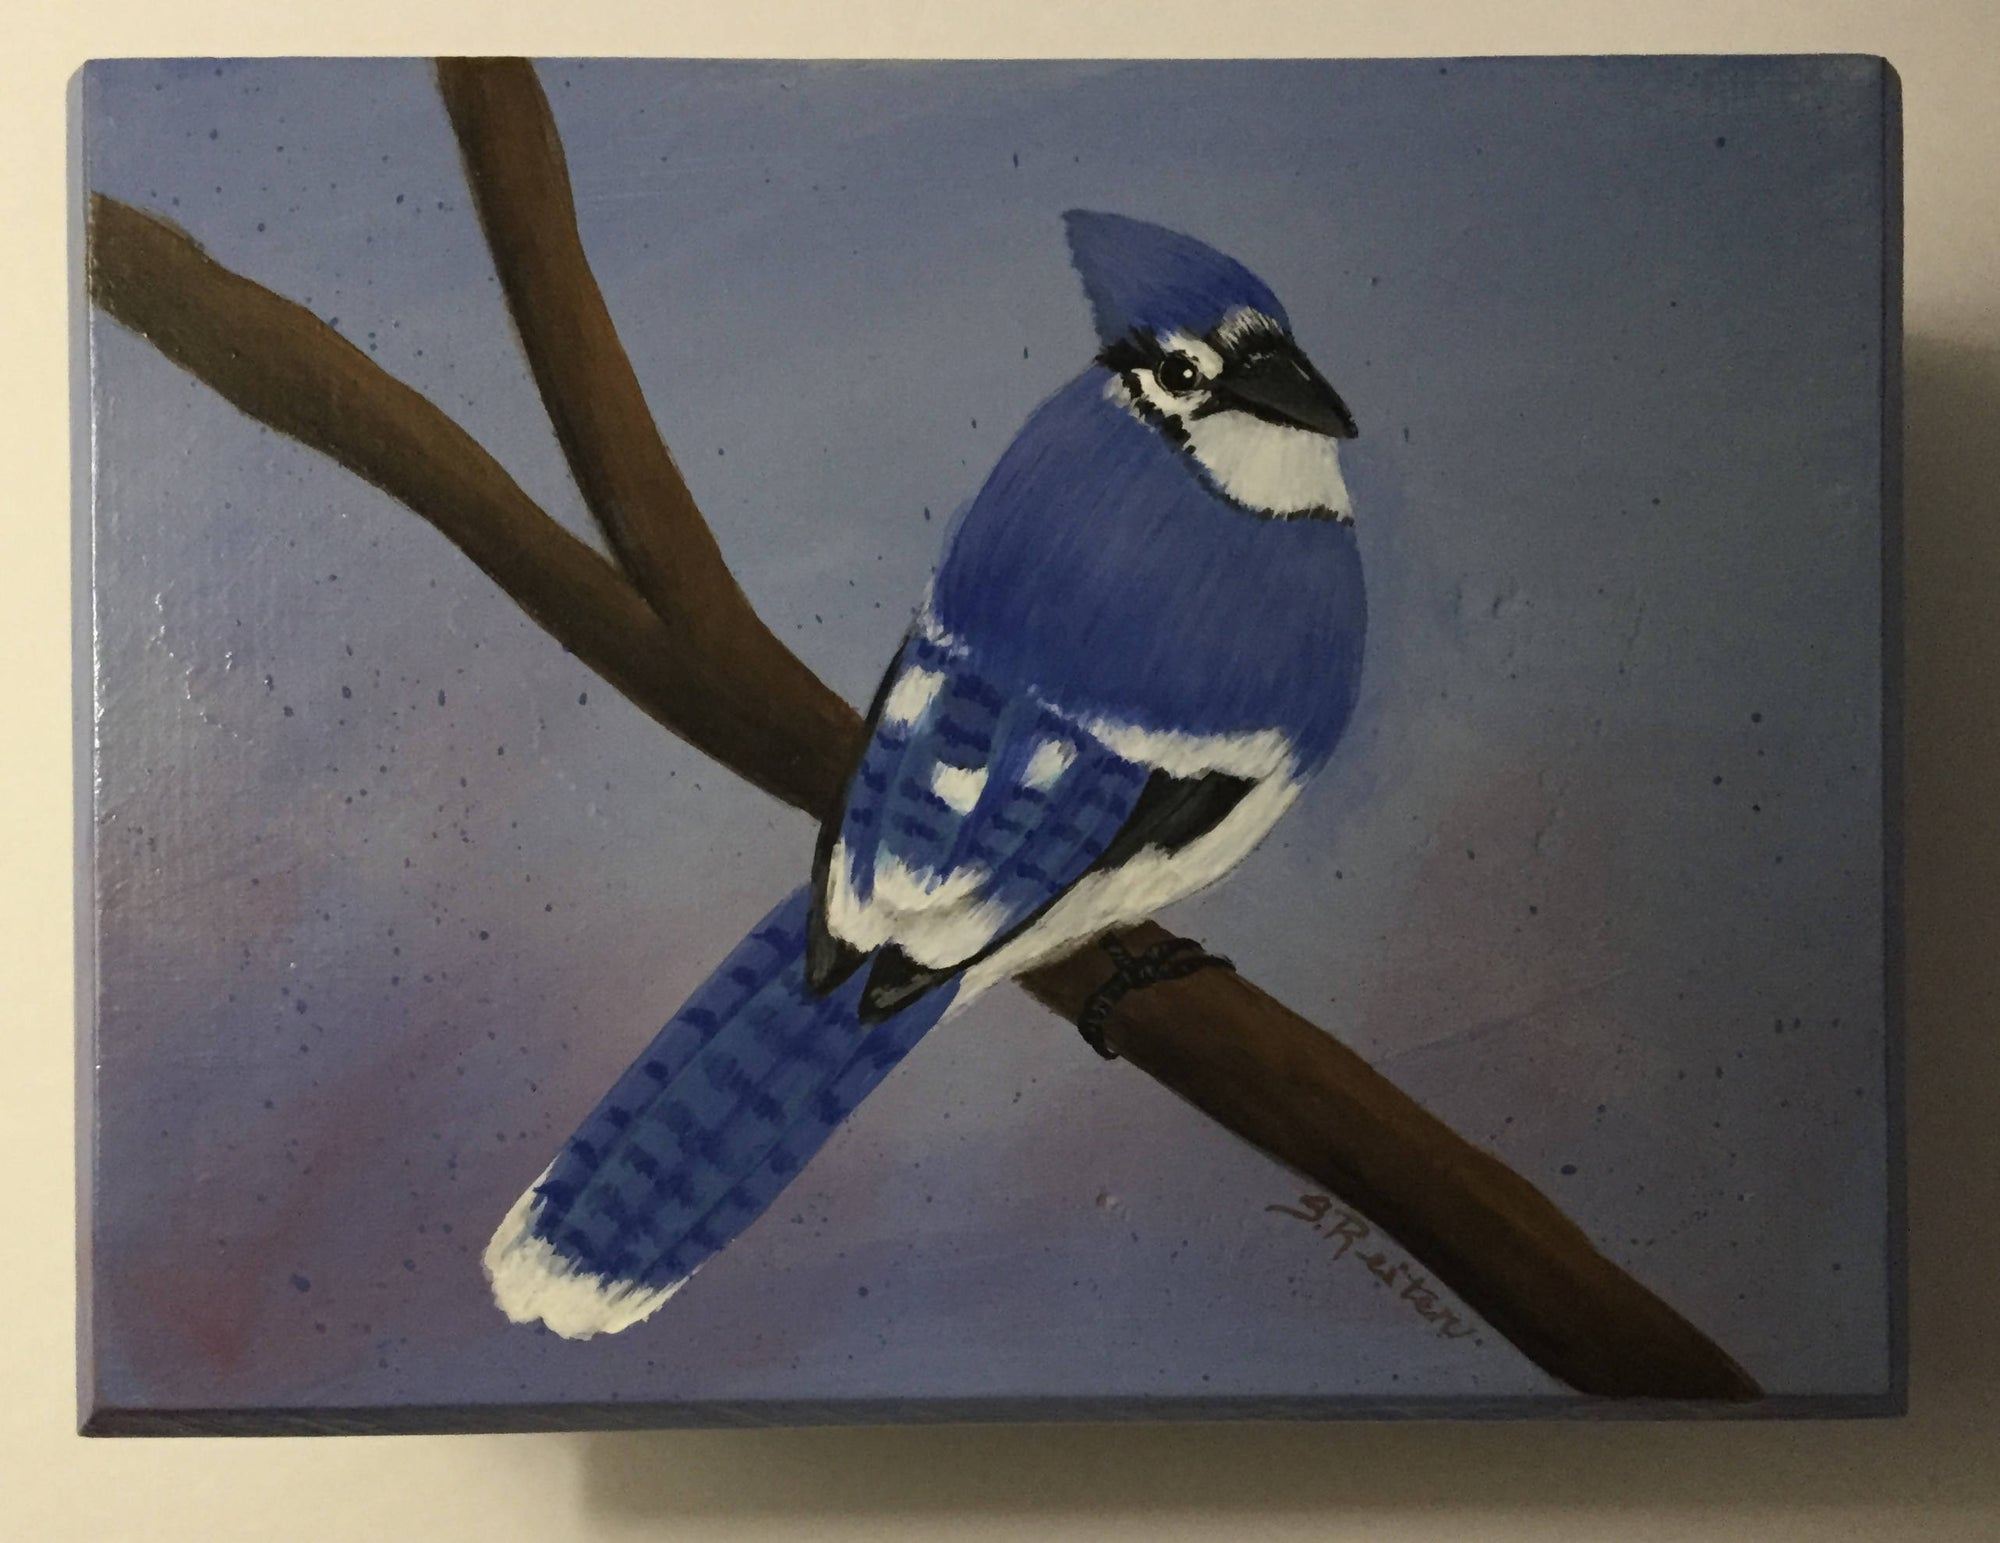 Small Wooden Box With A Hinged Lid and Hand Painted With A Bluejay - Great to Store Tea or Coffee